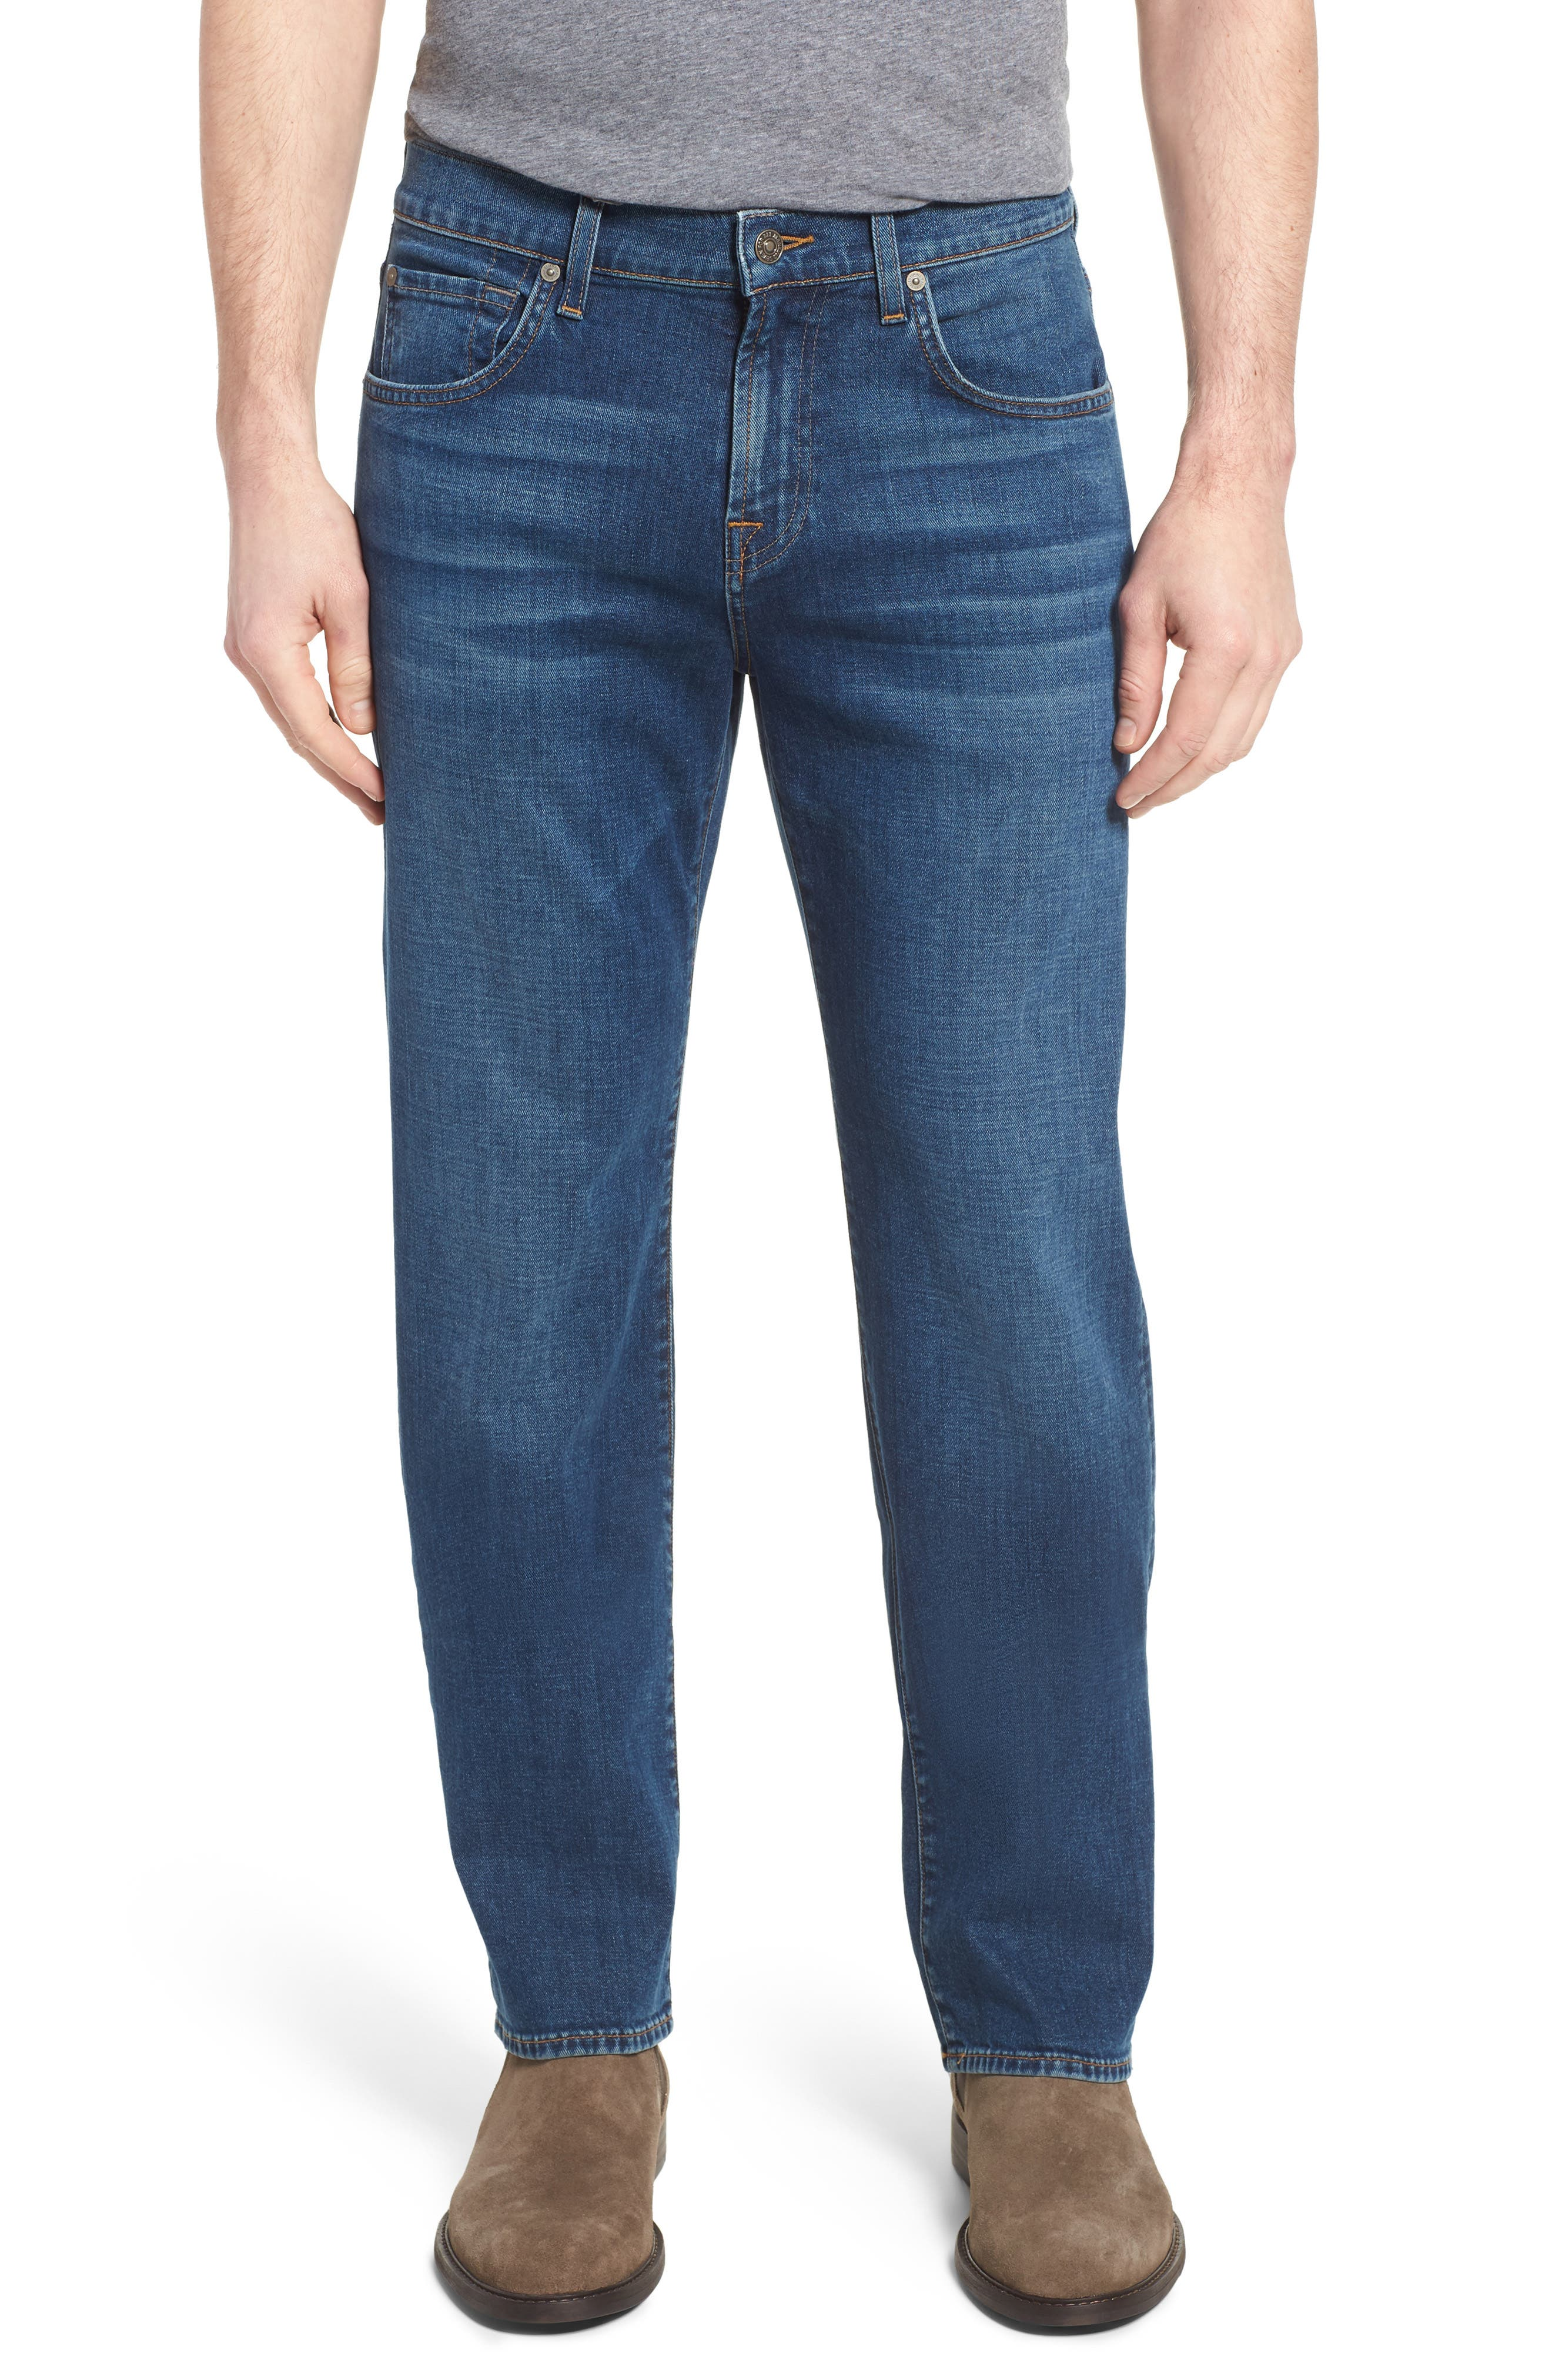 Austyn Relaxed Fit Jeans,                             Main thumbnail 1, color,                             Oasis